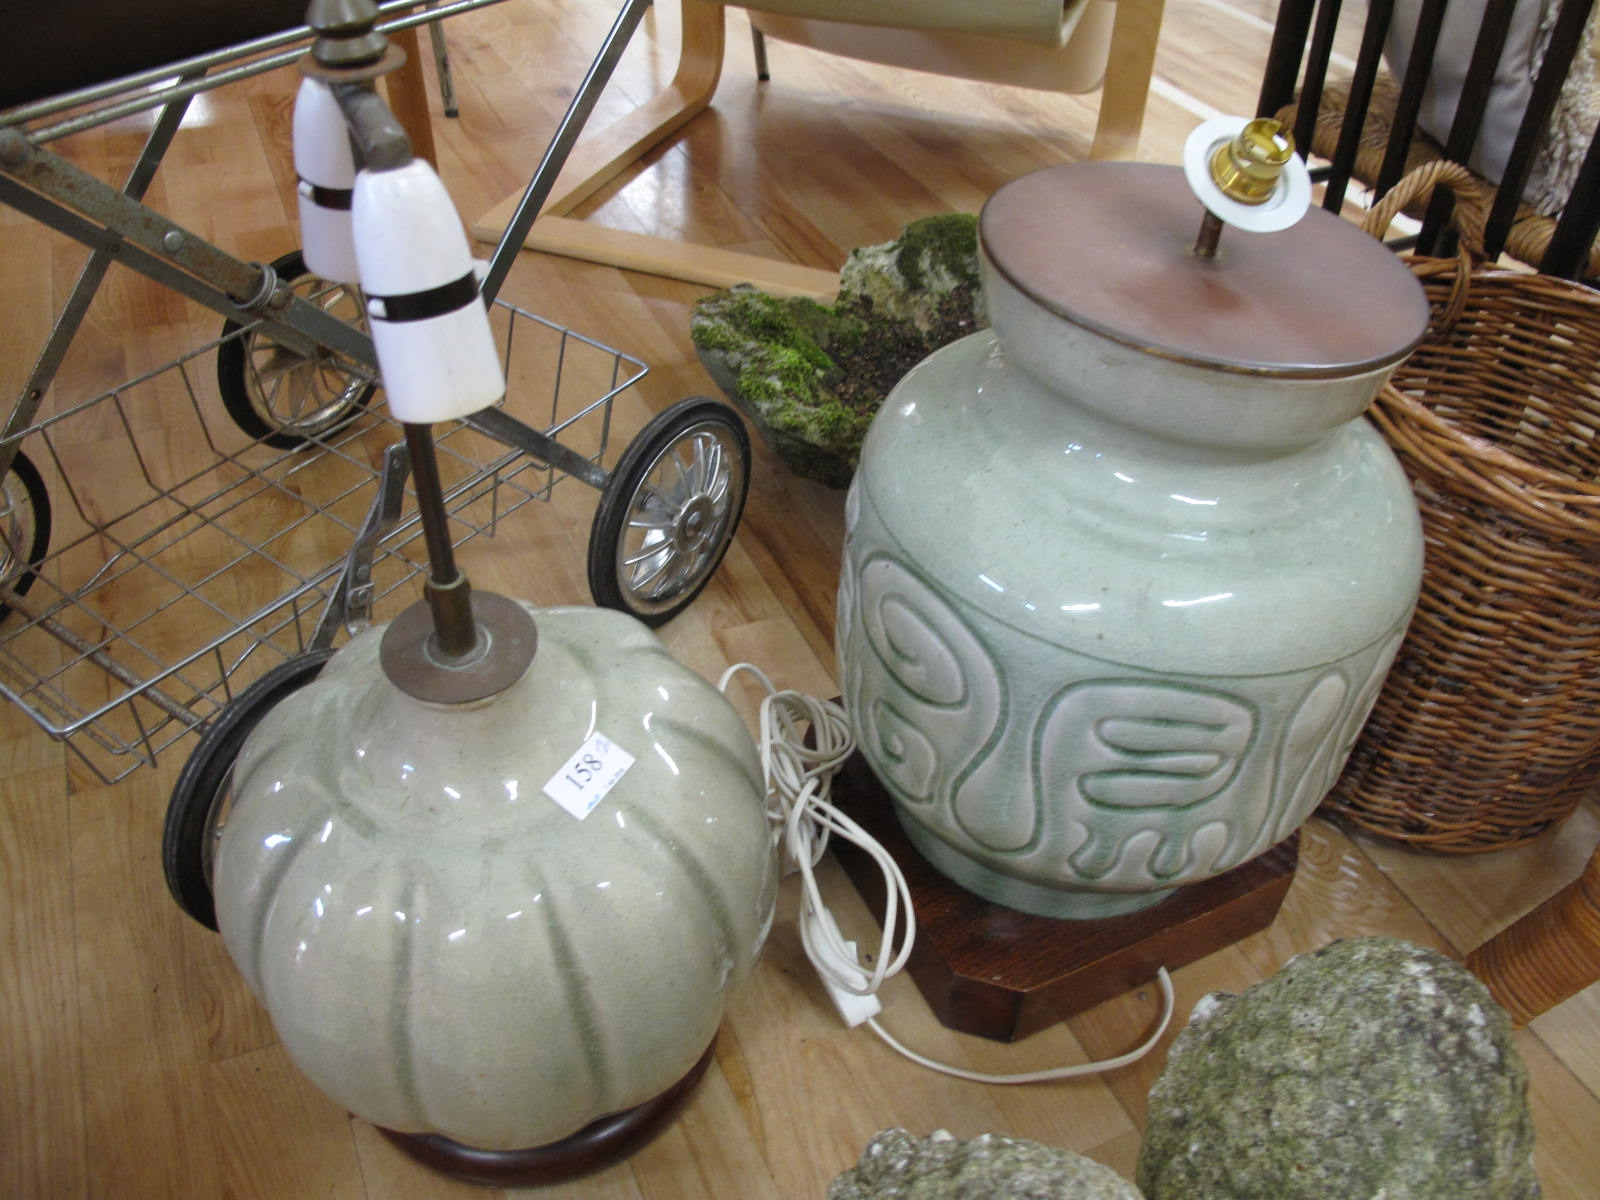 Lot 158 - Two celadon lamp bases - Sold for £35